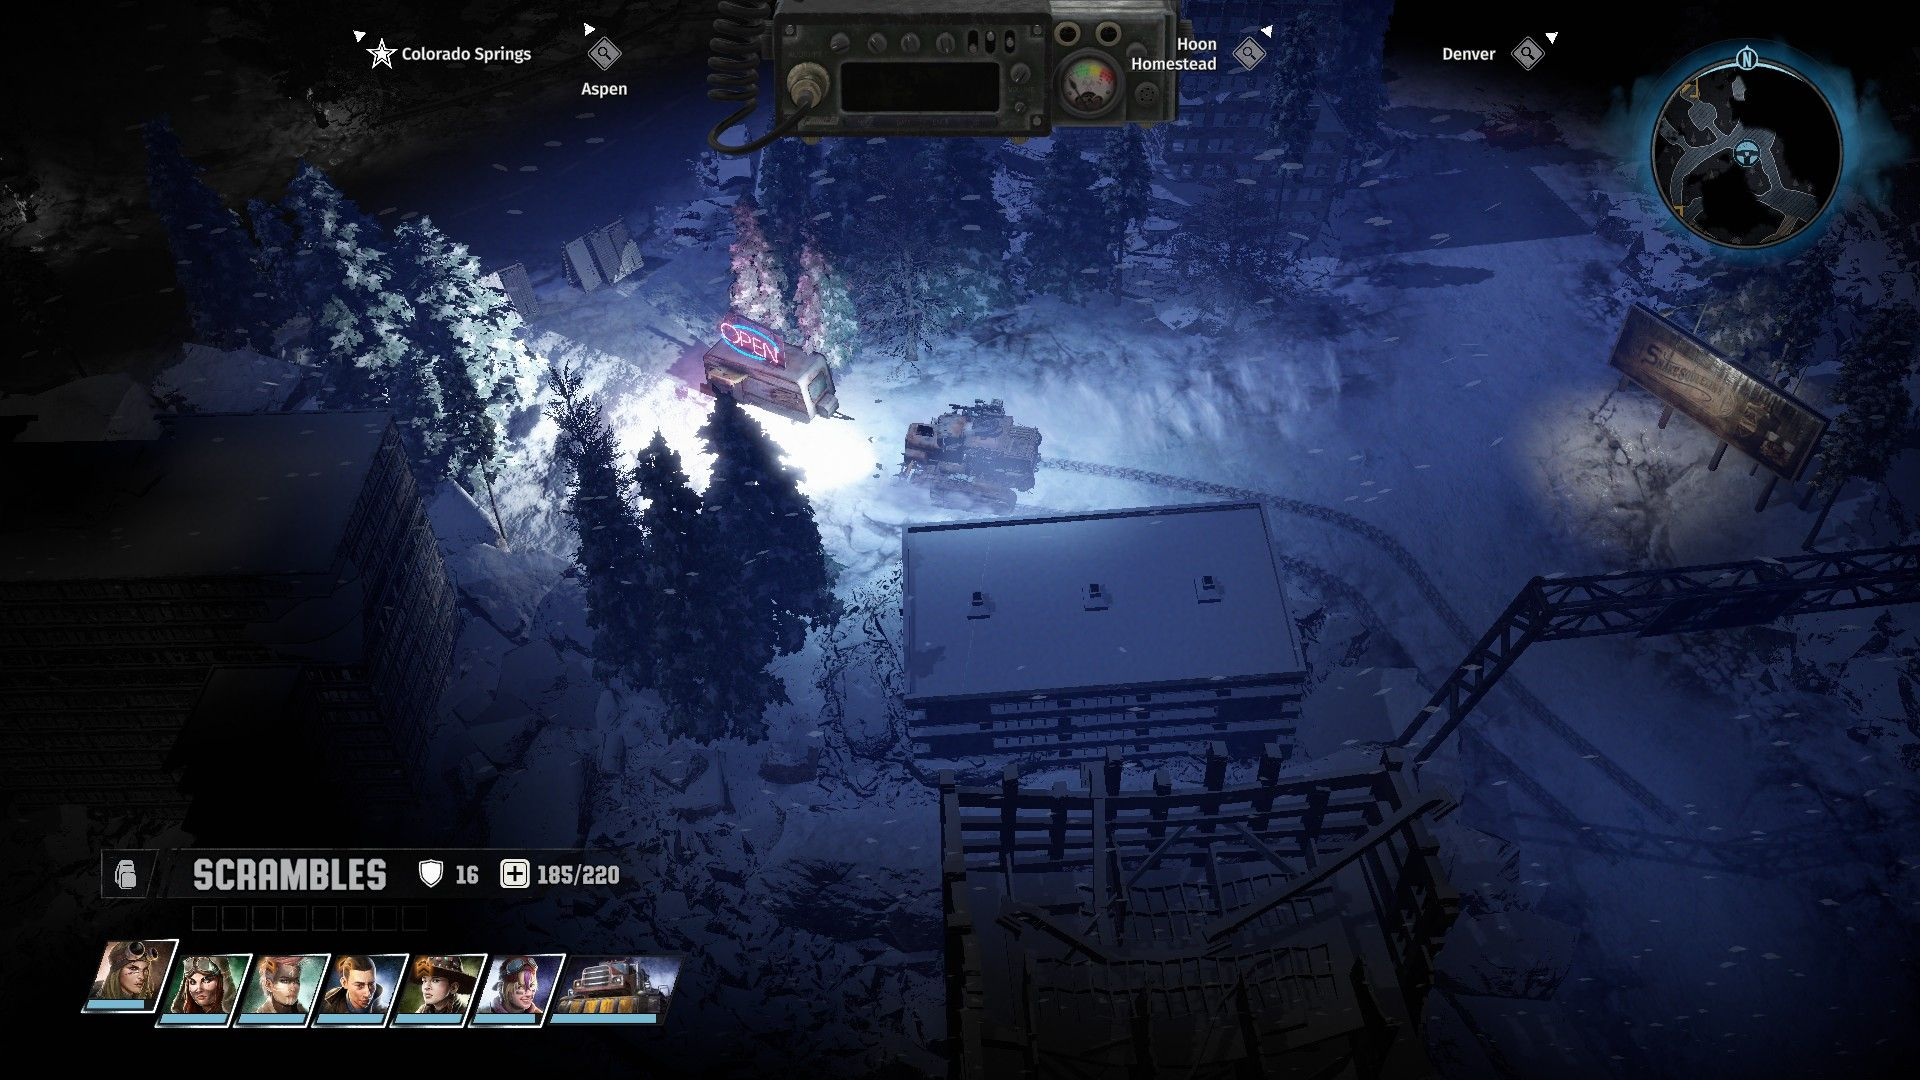 A screenshot showing the character levelling screen in Wasteland 3, for a locksmith called Beamer. They can level up skills in things like Lockpicking, Explosives, Mechanics and Toaster Repair.